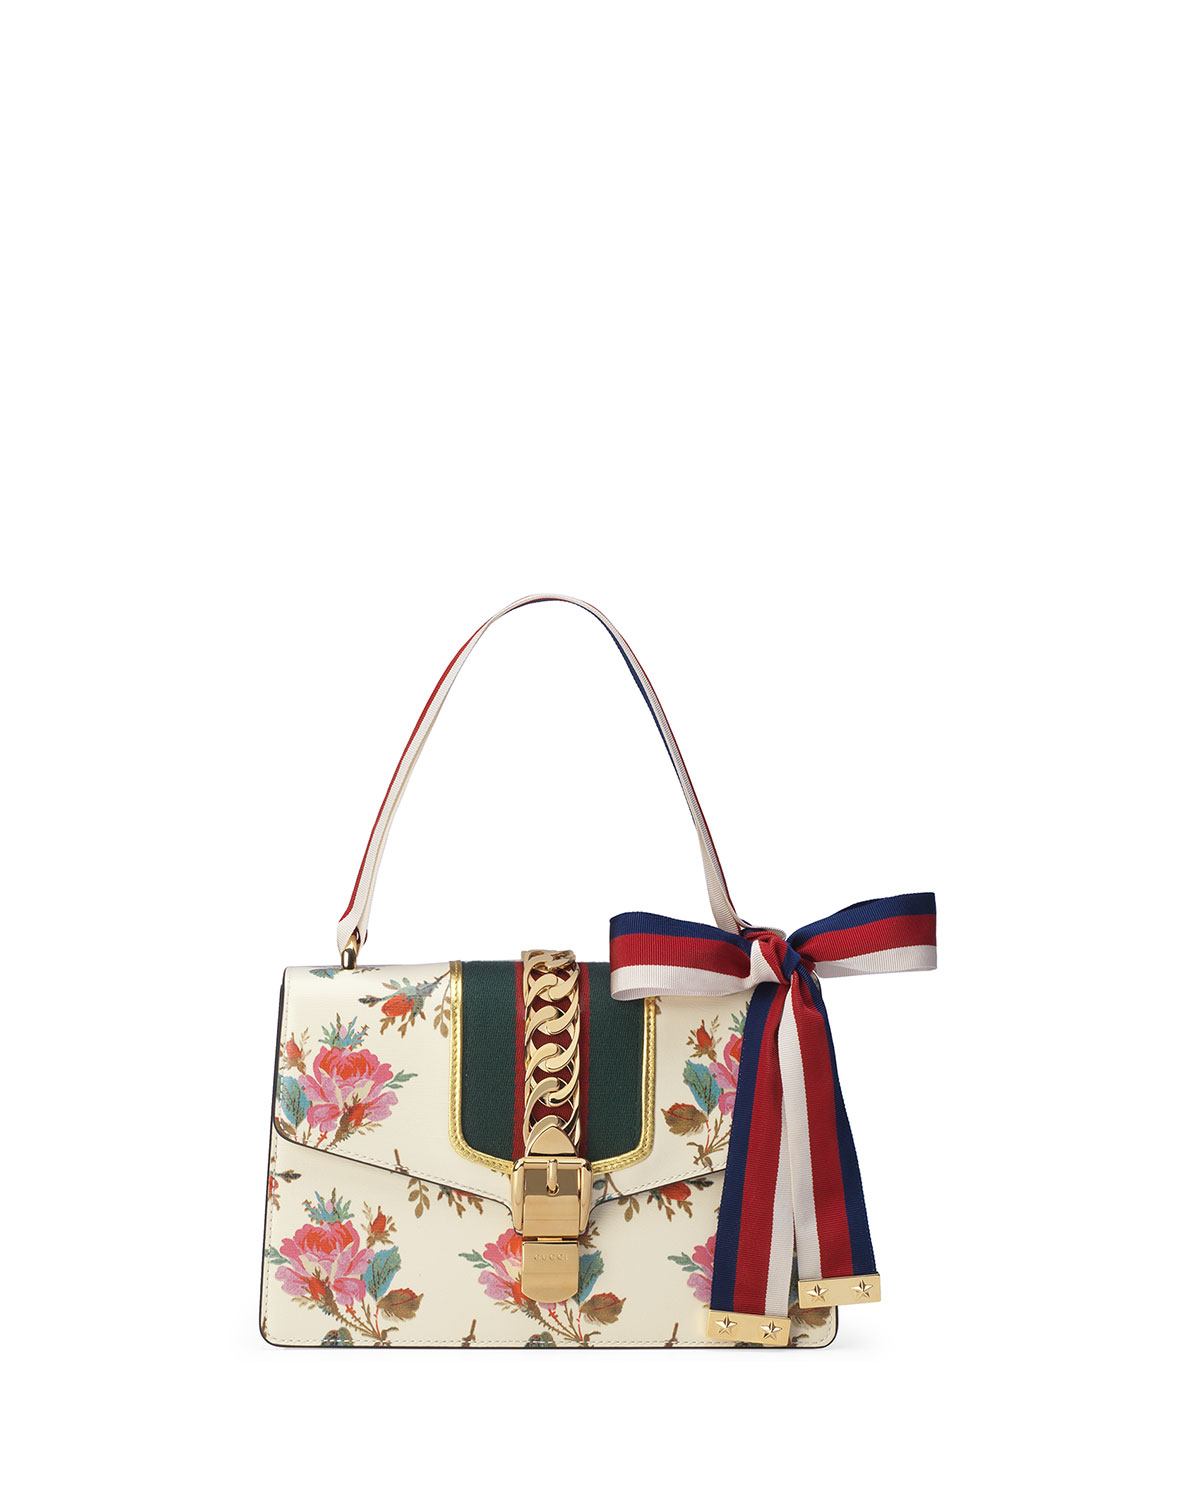 bc6d8f588 Gucci Sylvie Small Rose Floral Leather Shoulder Bag | Neiman Marcus